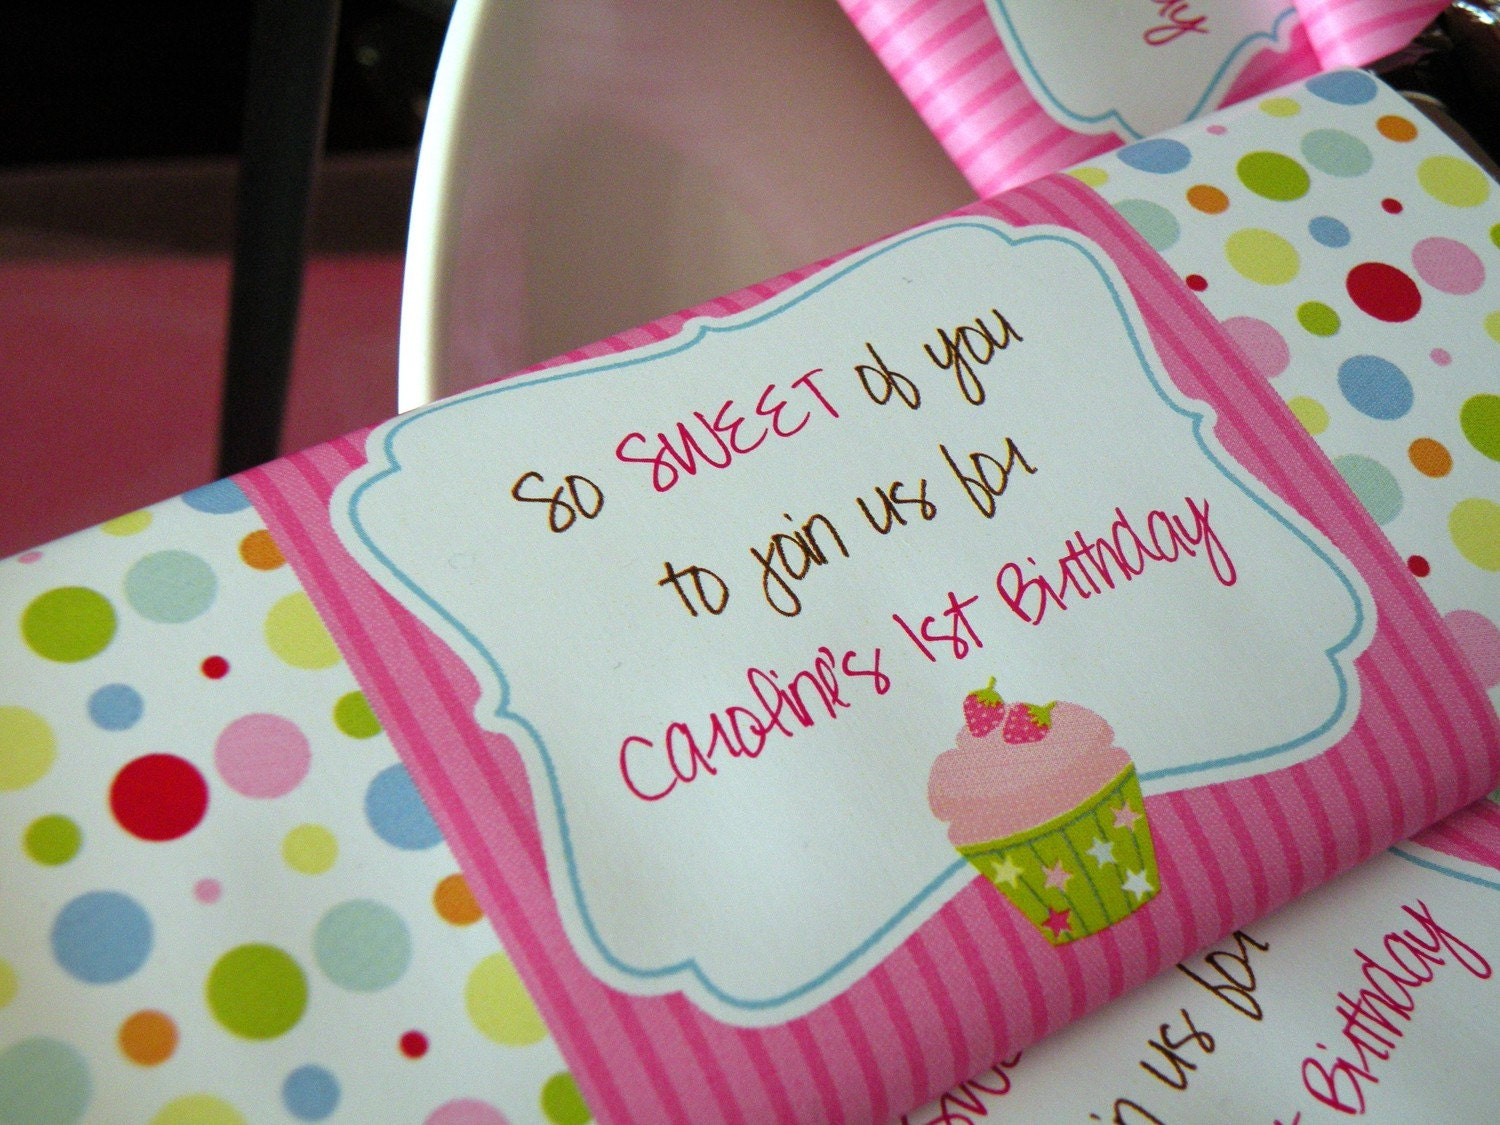 Cupcake Theme Birthday Party Candy Bar Wrapper by PartySoPerfect